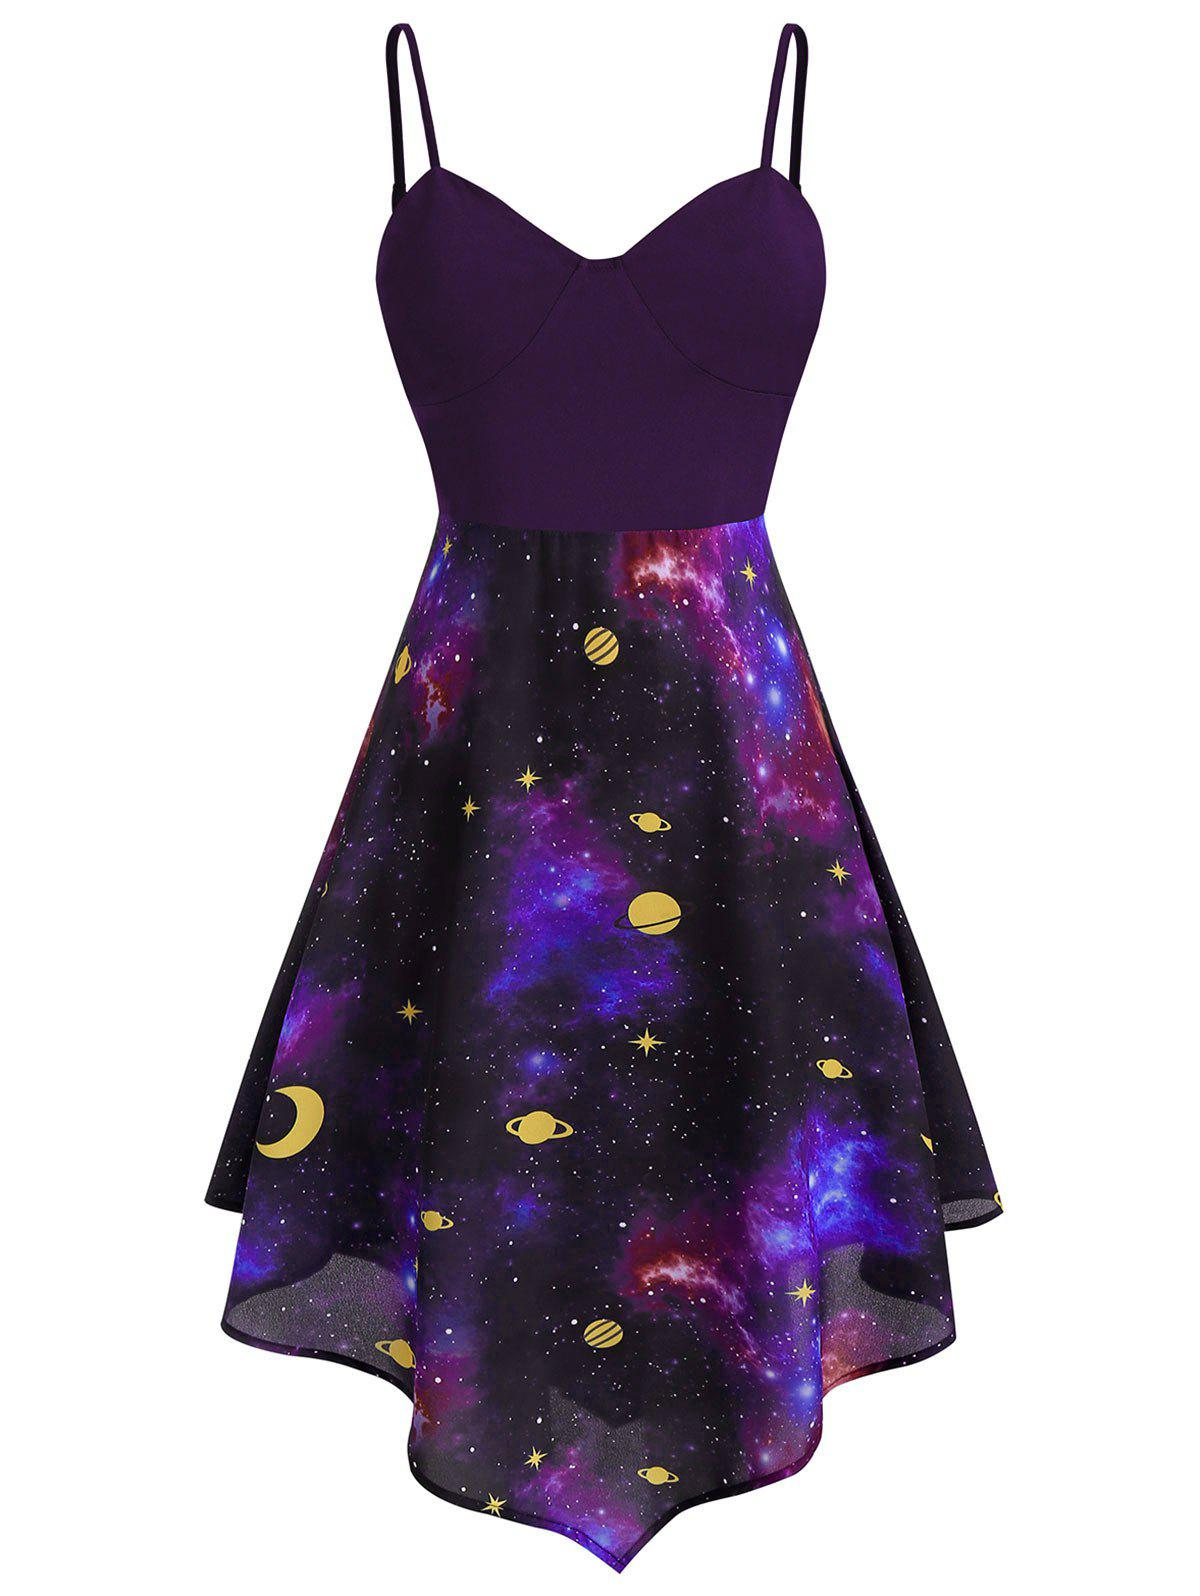 Plus Size Asymmetric Moon and Star Starry Cami Dress - PLUM PURPLE 3X